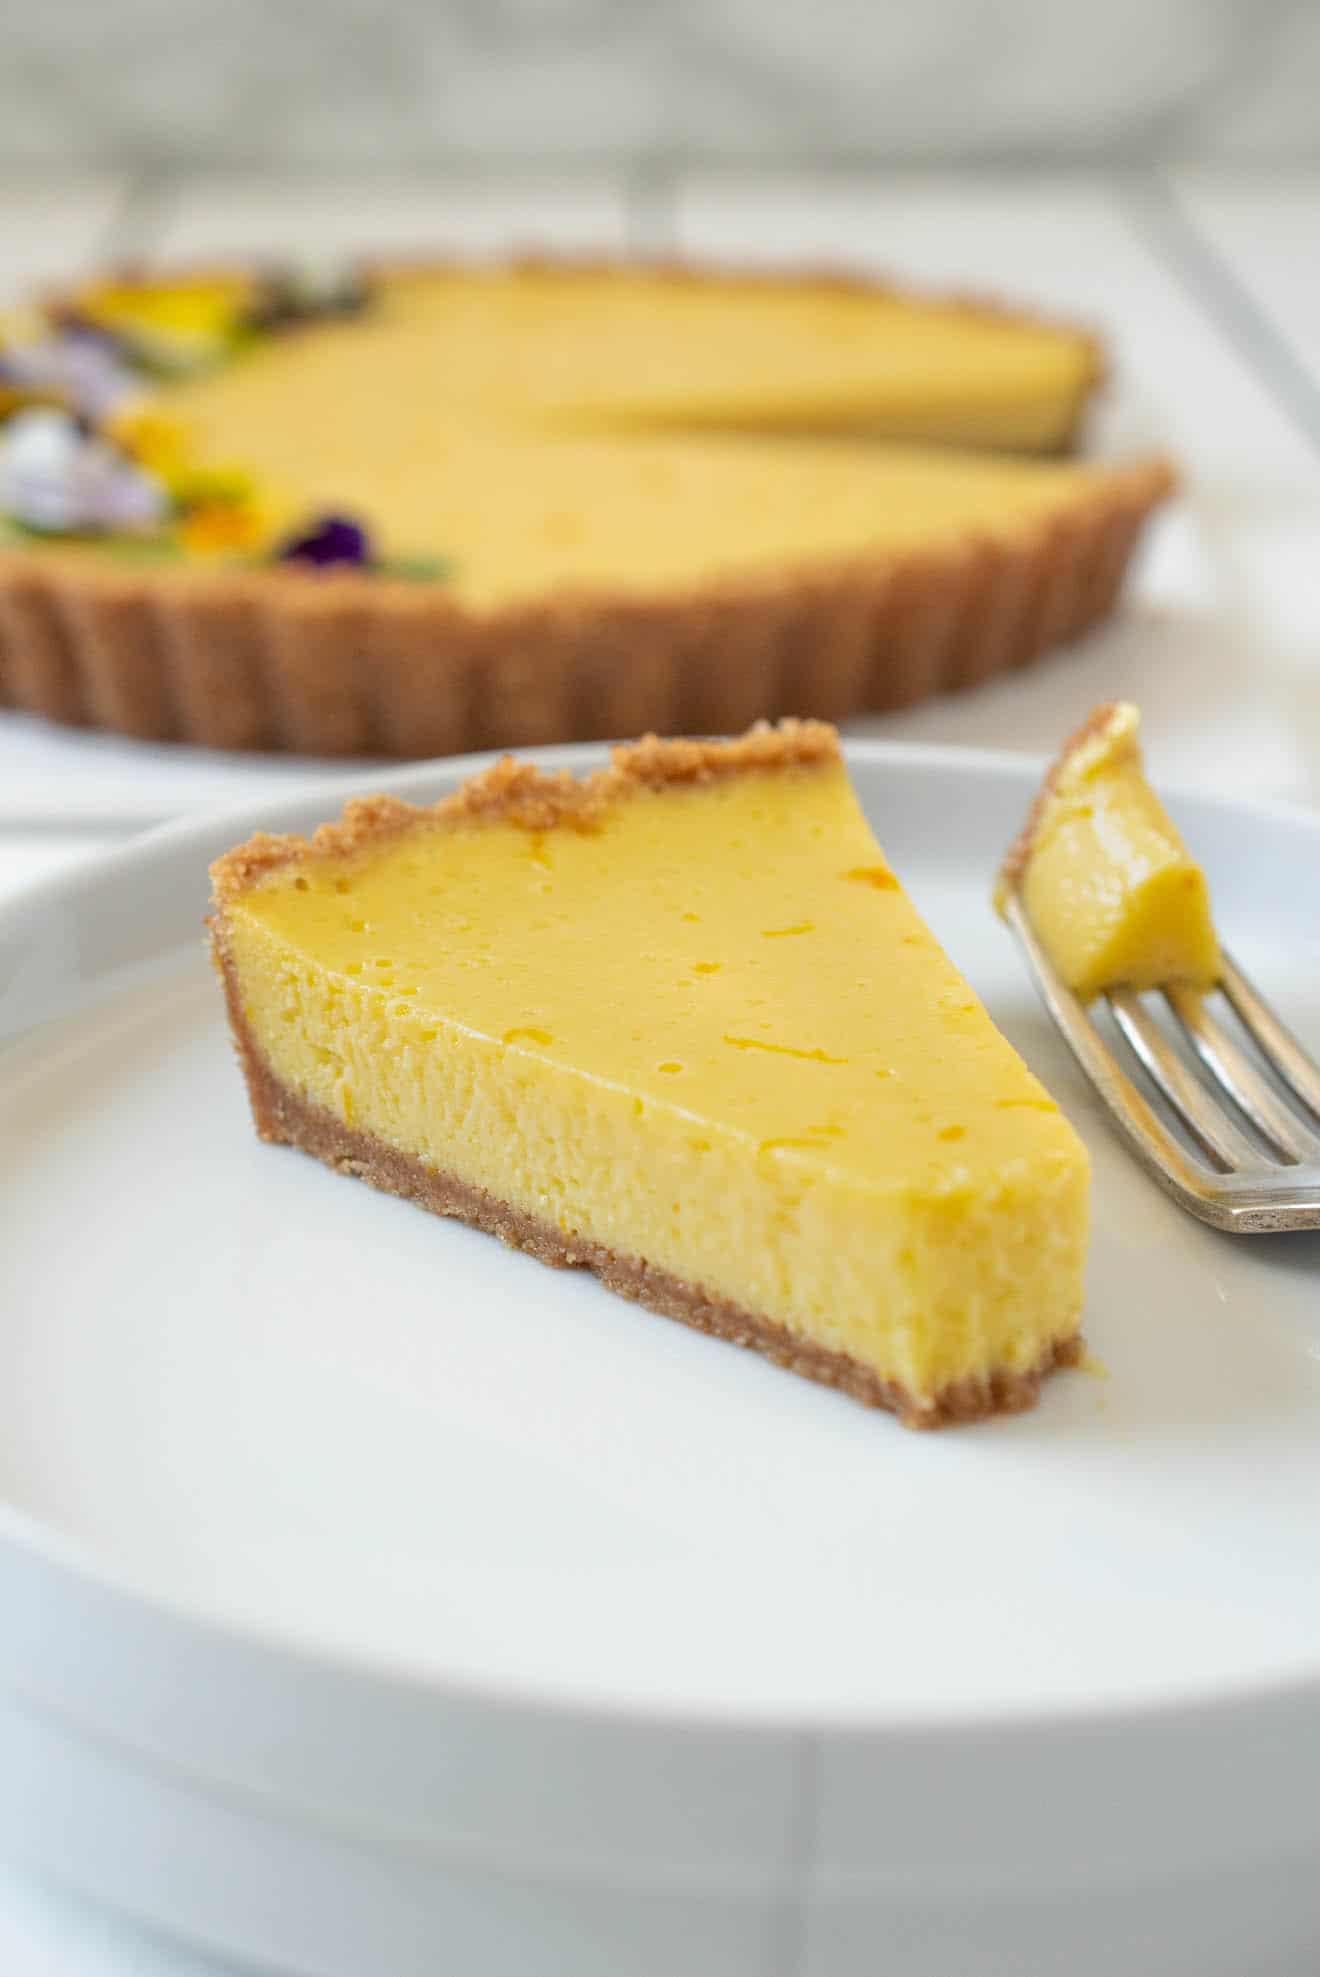 A slice of mango pie on a white plate with some on a fork